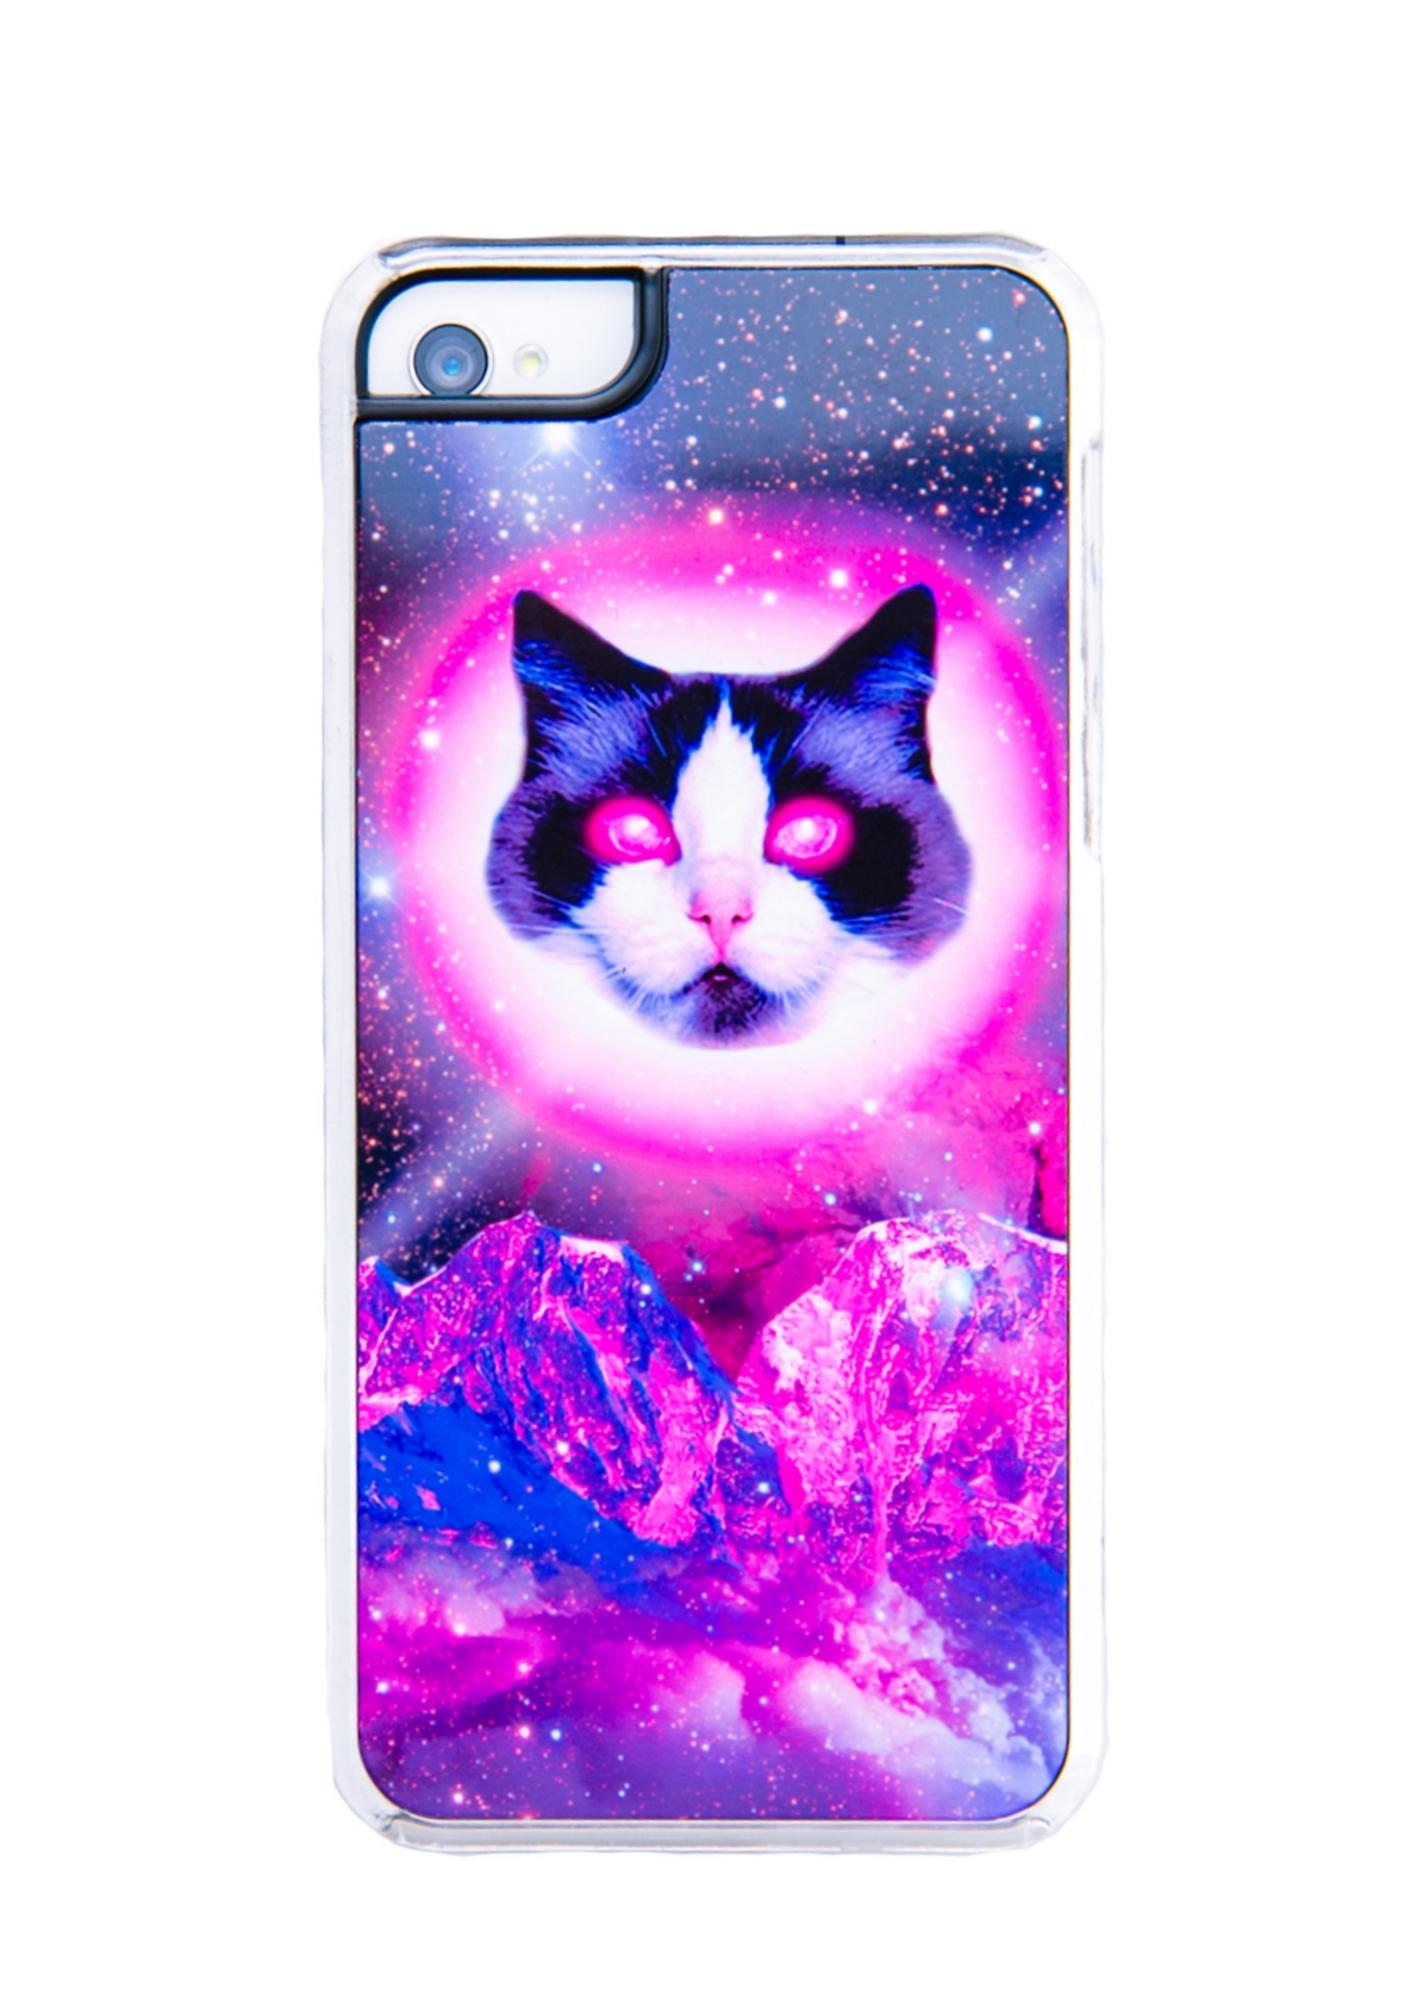 Cat of Oz iPhone 5 Case